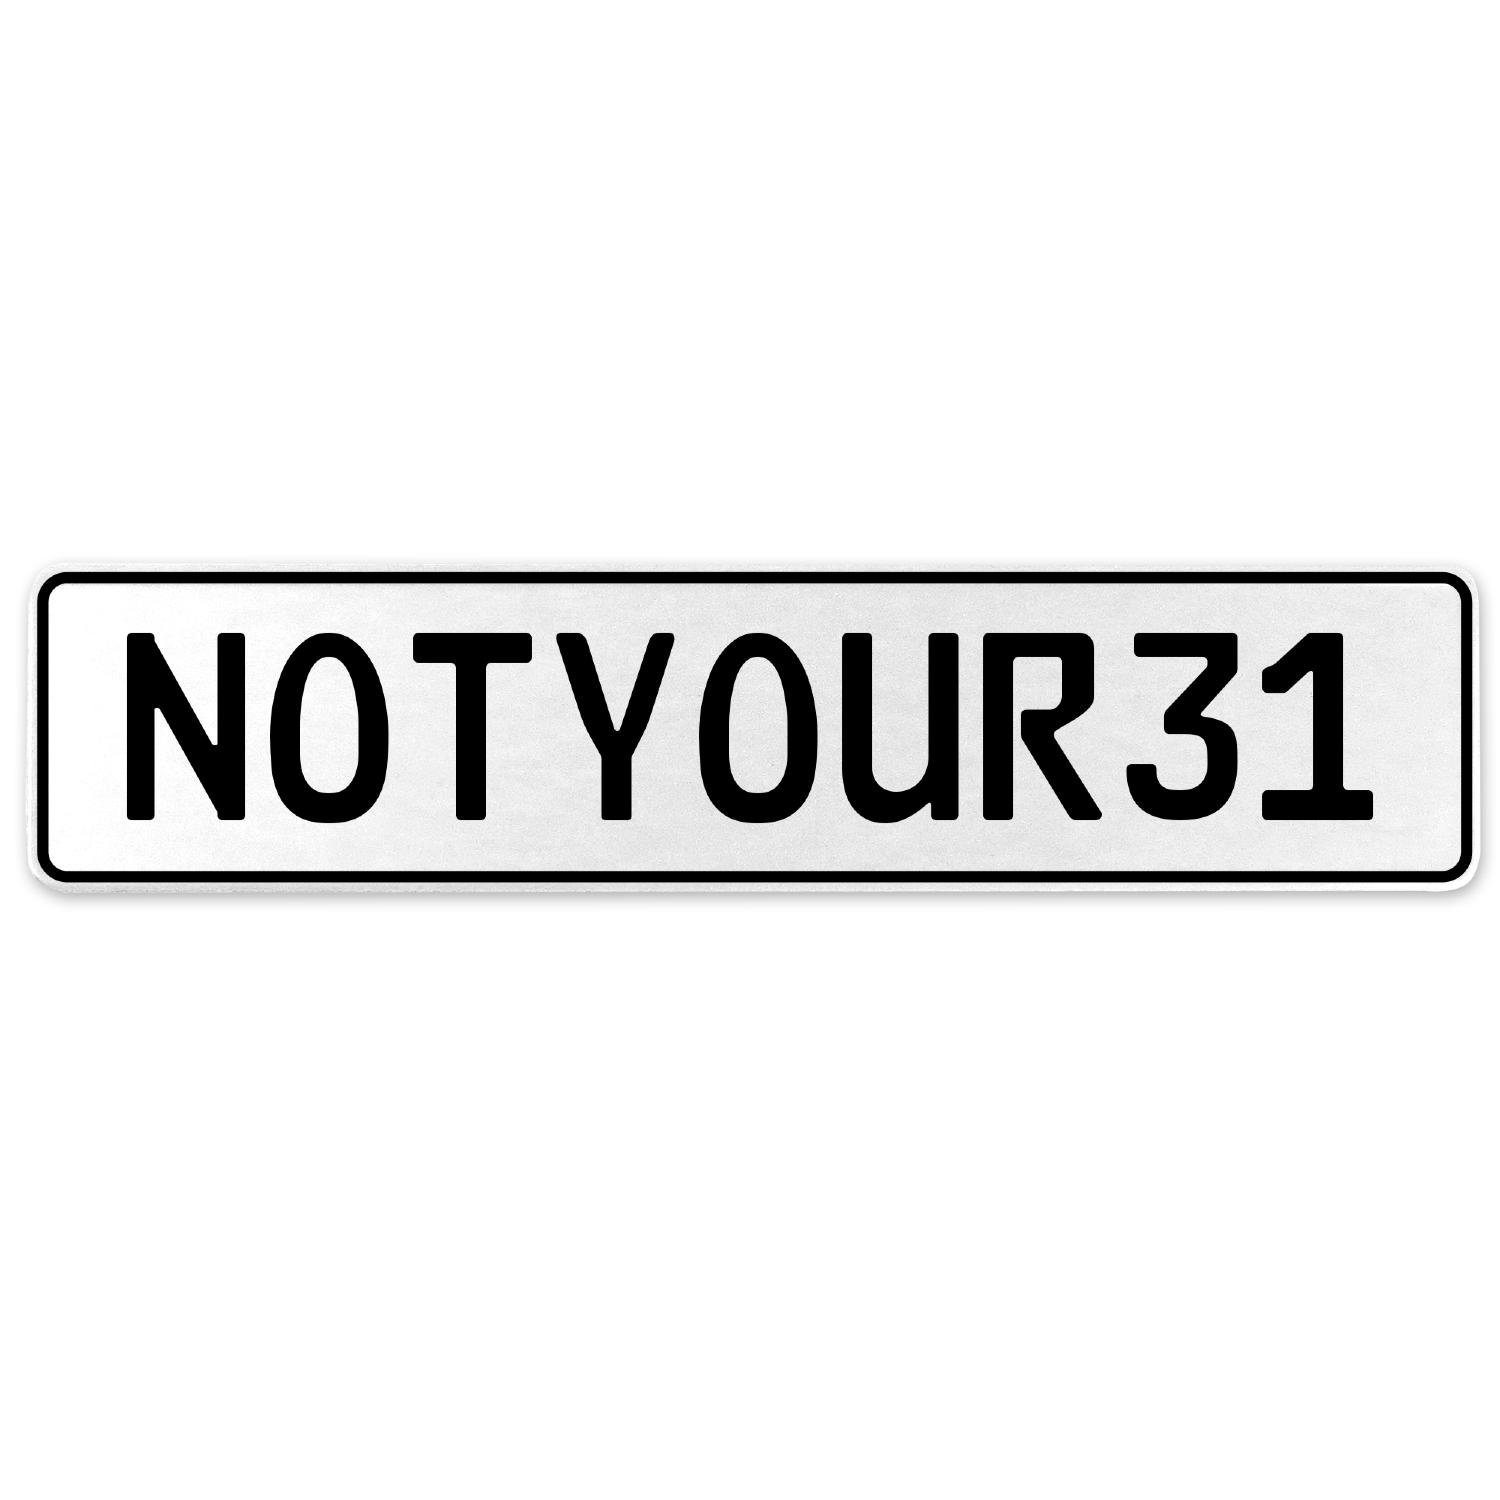 Vintage Parts 555420 NOTYOUR31 White Stamped Aluminum European License Plate